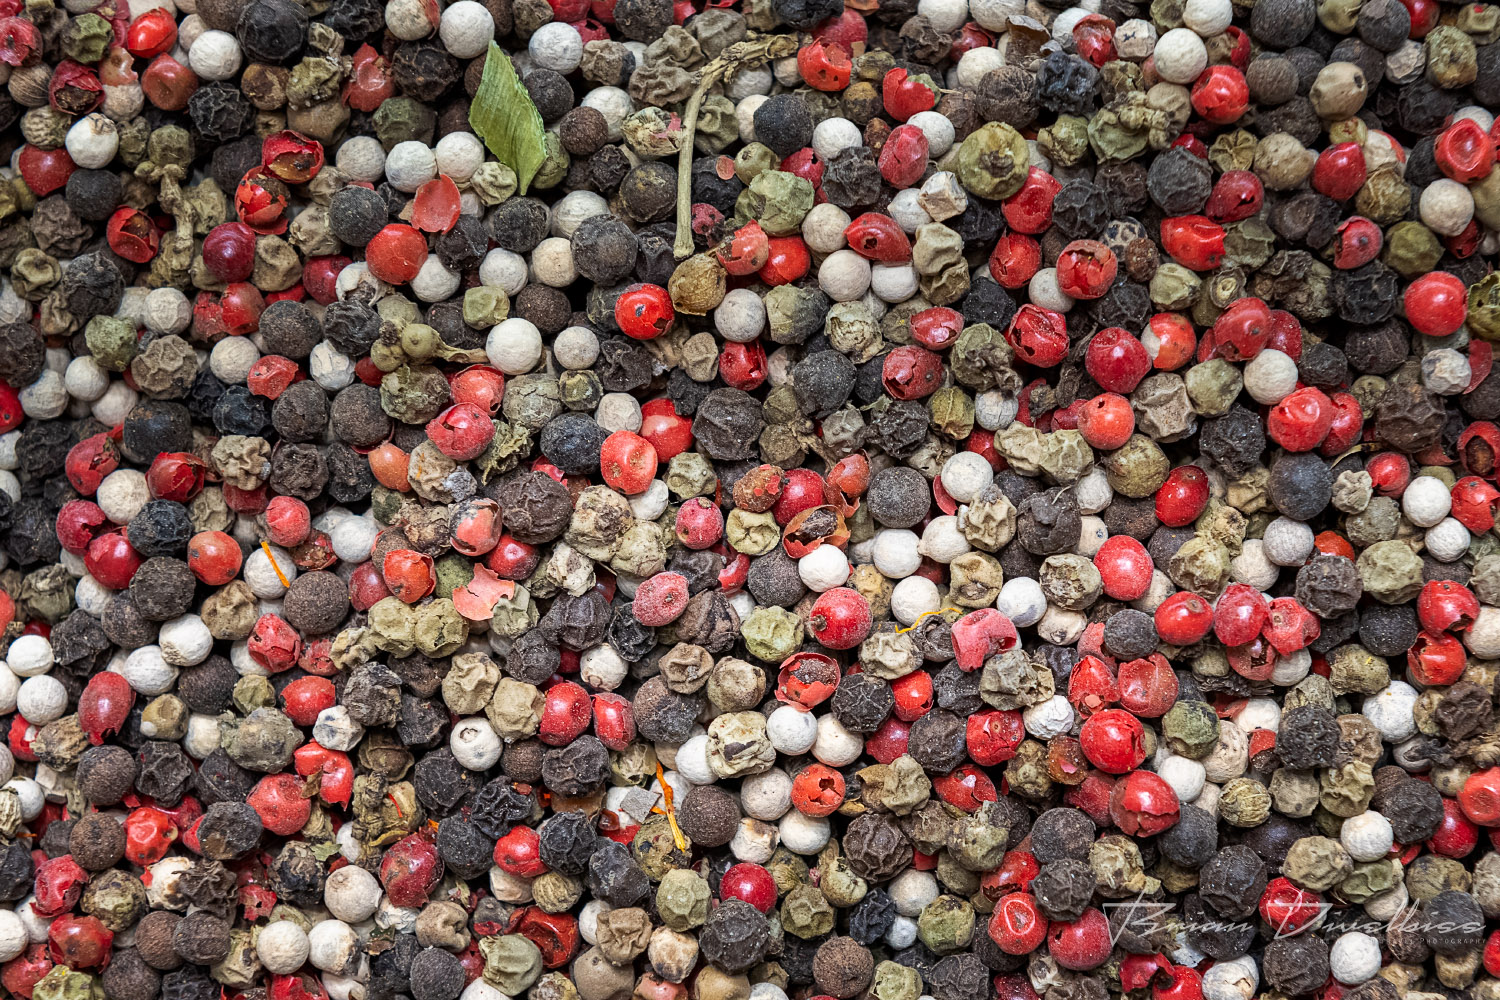 Close-up of red, white, and black peppercorns at the Spice Market in Istanbul, Turkey.